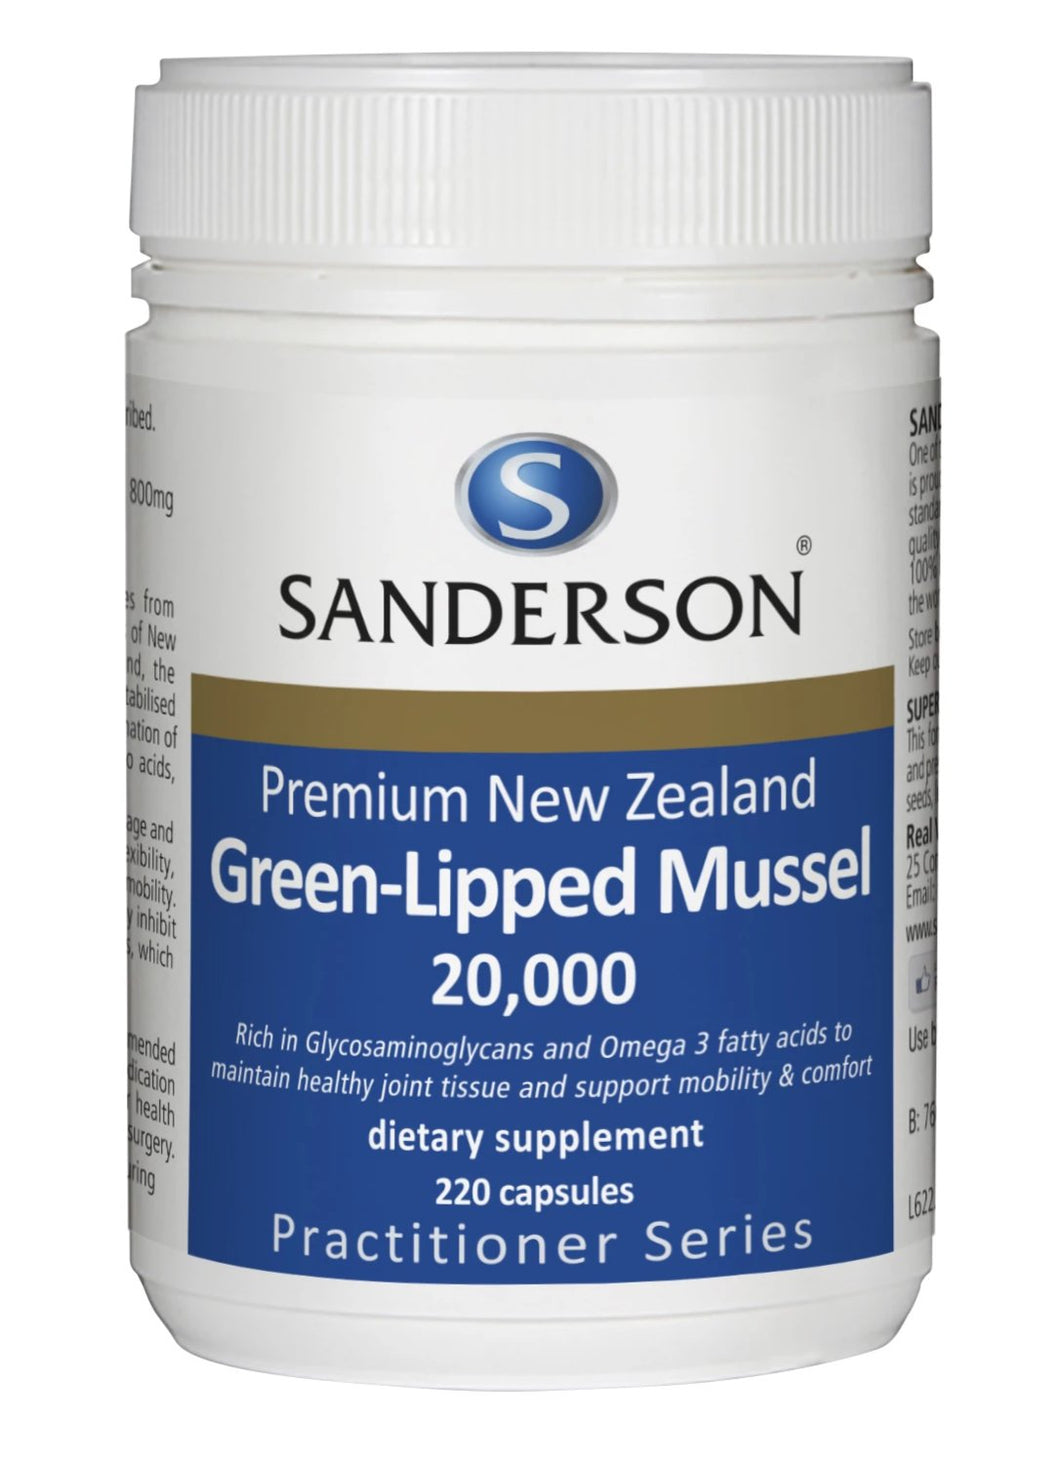 New Zealand Green-Lipped Mussel 20,000